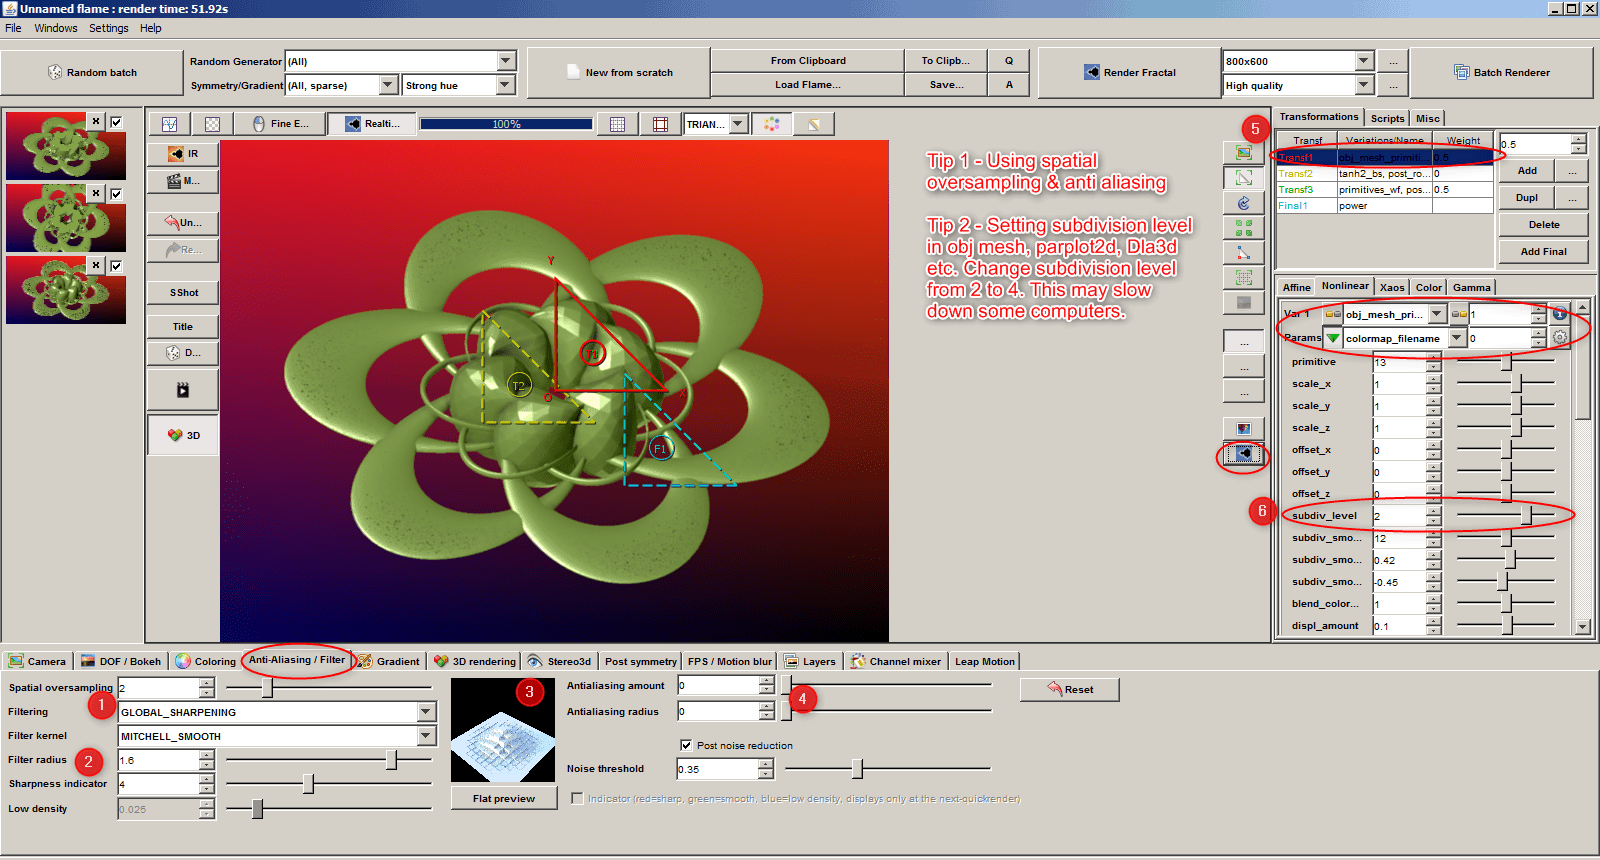 Weird Sphere  spatial os ai sub div level tile 2 | Weird Sphere - how to get a quality render